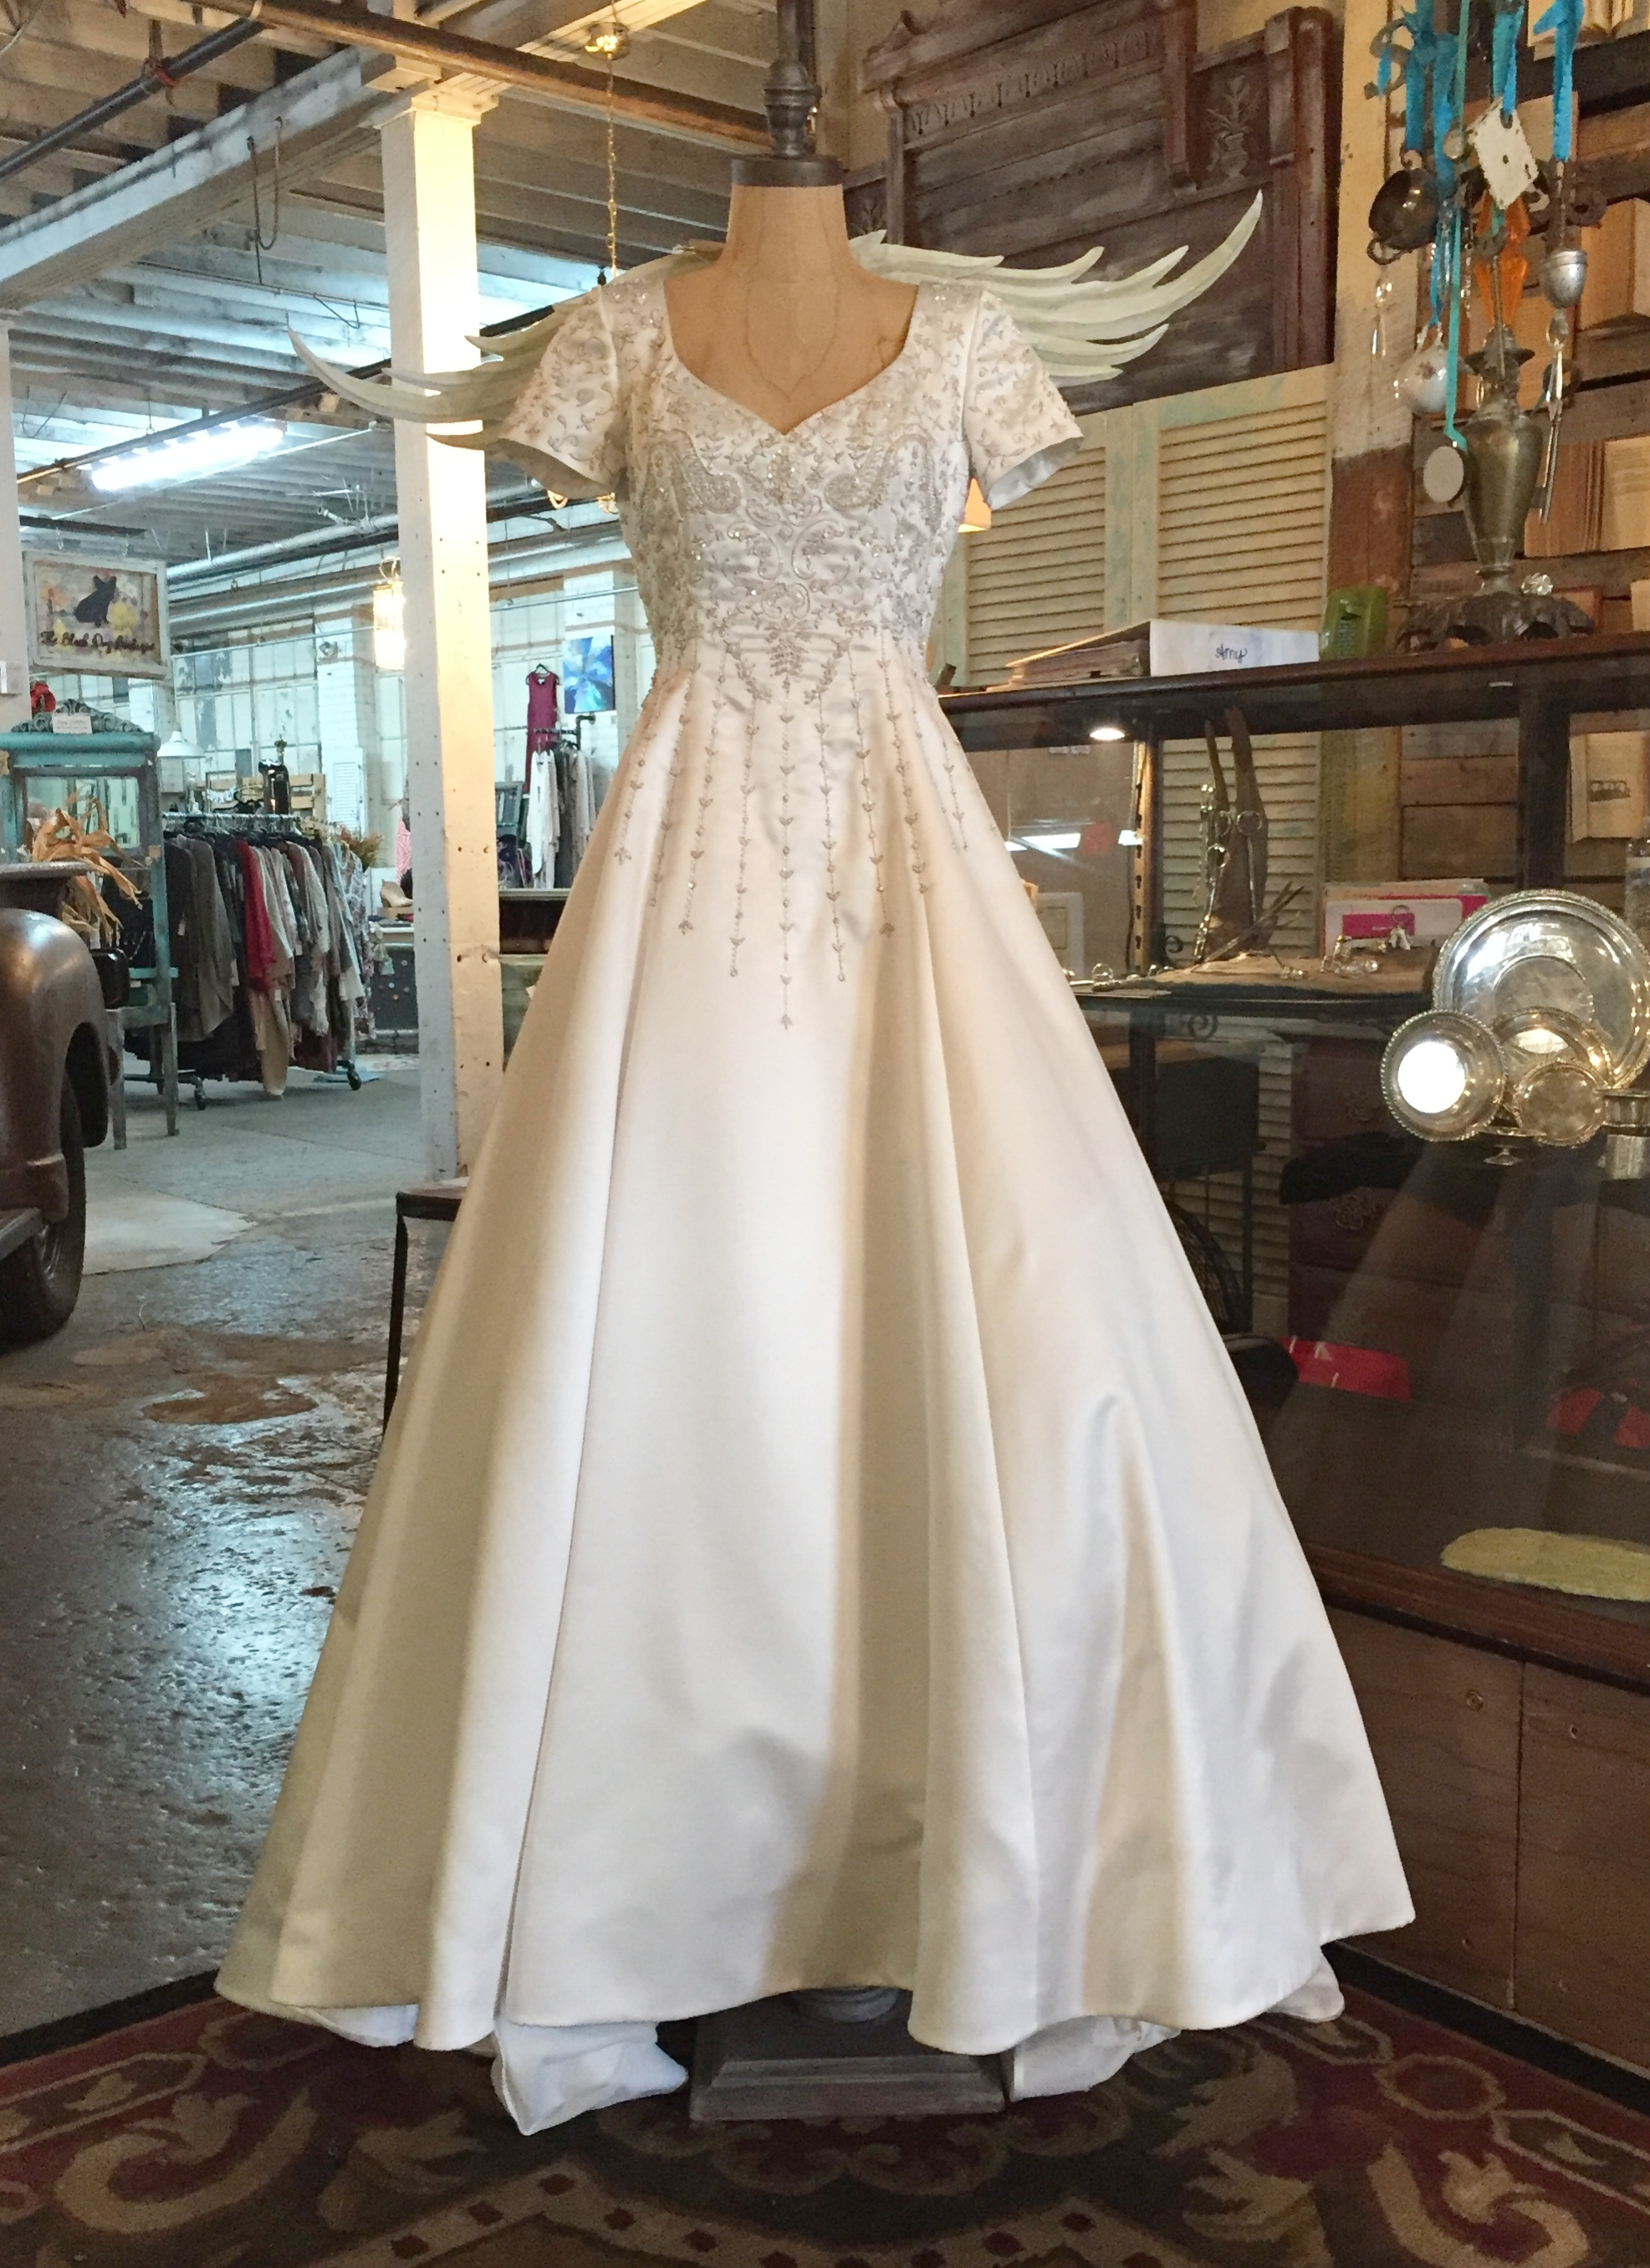 This gown will be raffled off to raise money for Upstate Warrior Solution.